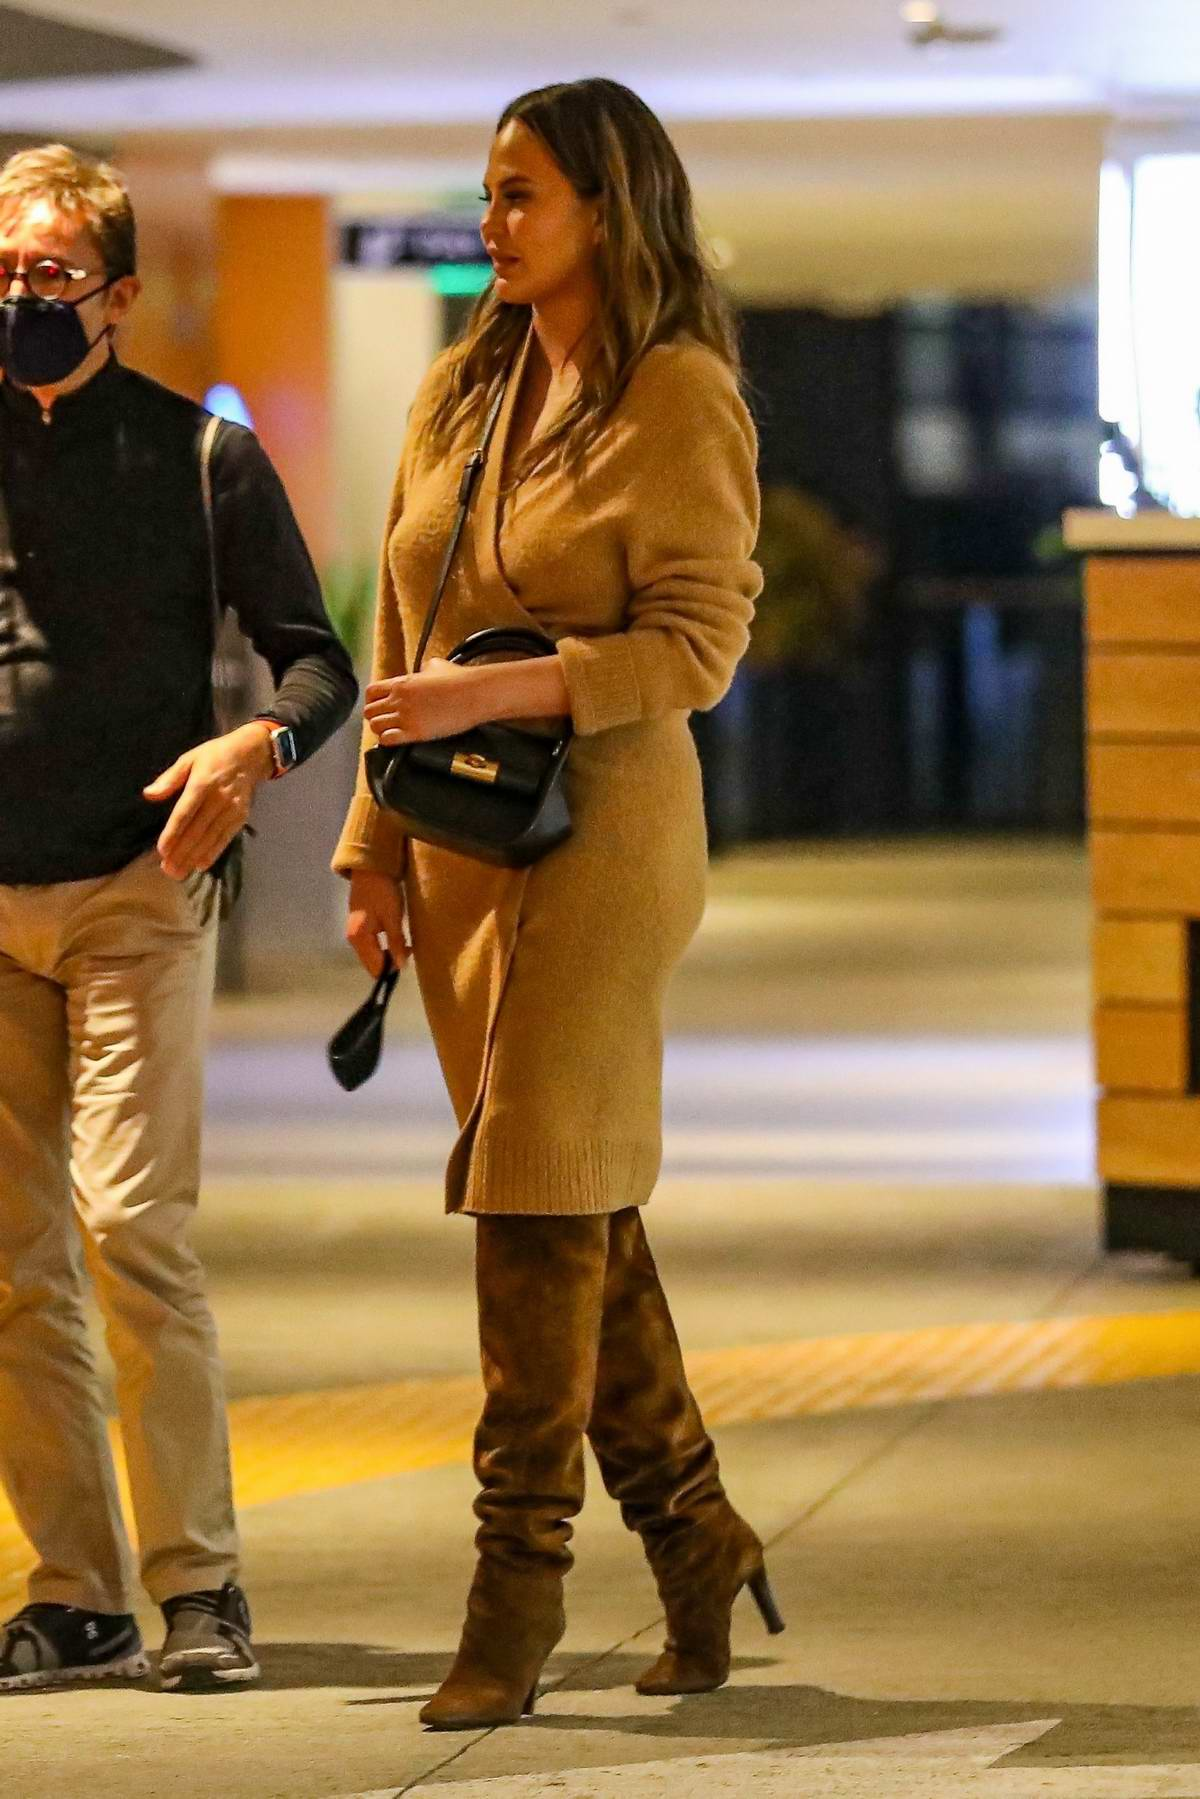 Chrissy Teigen looks stylish in a wrap dress and knee-high suede boots during a dinner outing in Los Angeles